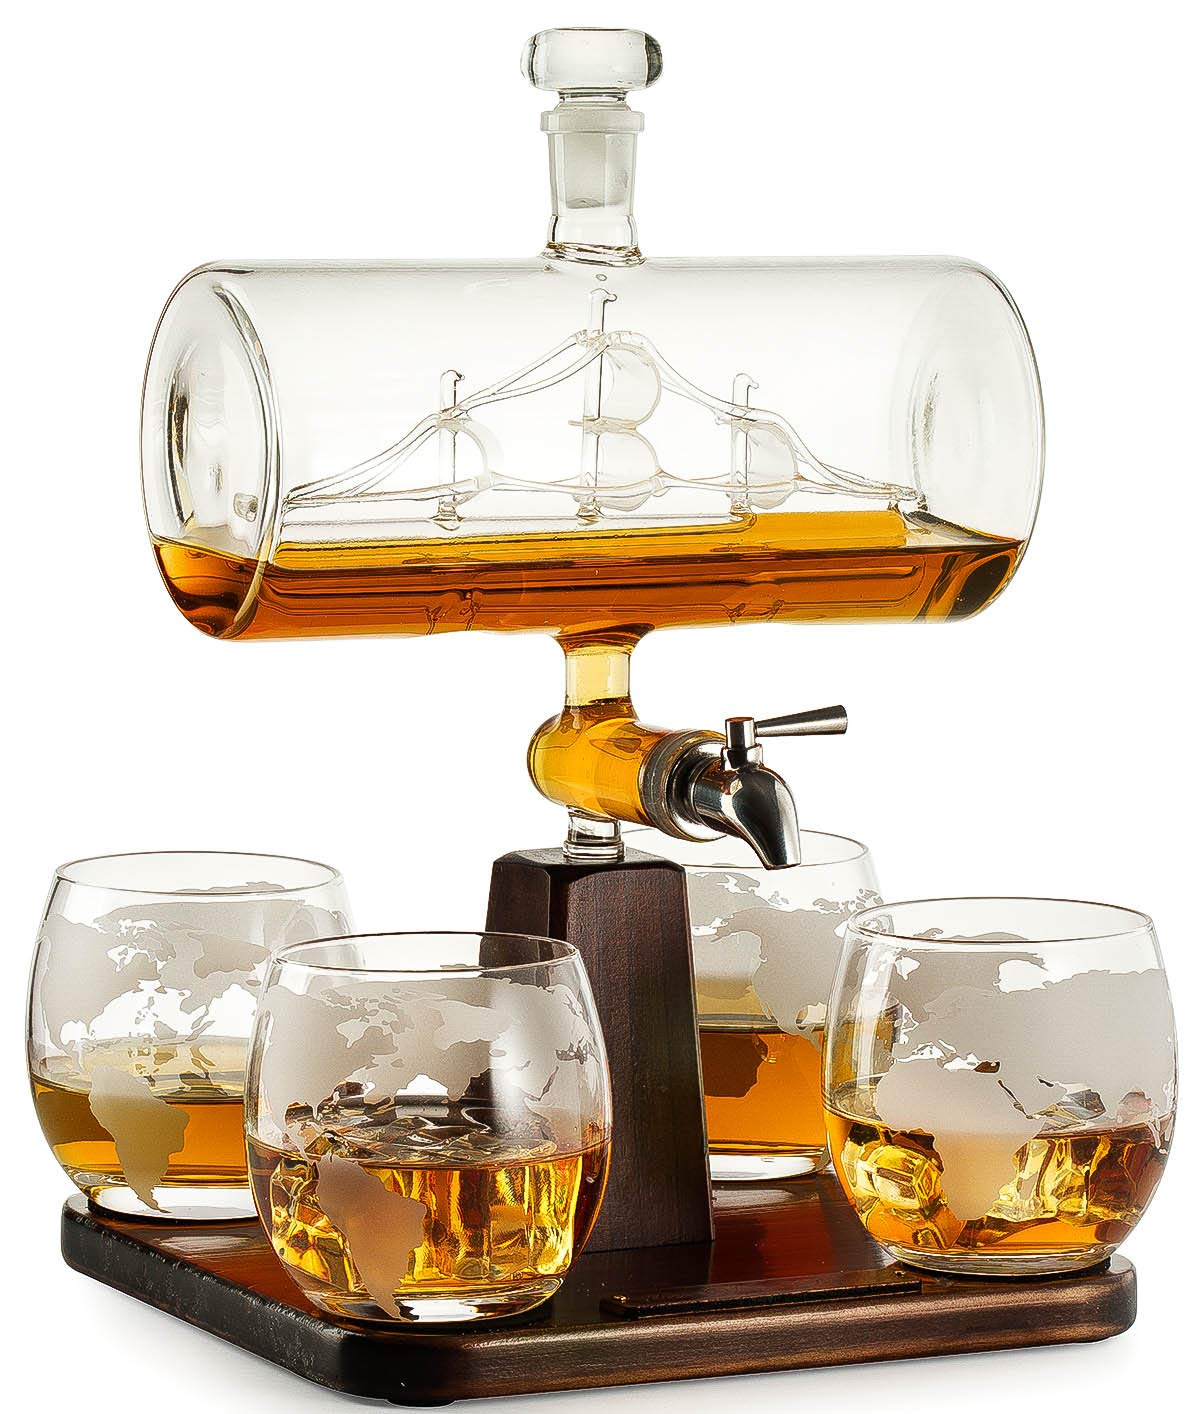 Whiskey Decanter with Antique Ship - The Wine Savant Ship Decanter Set with 4 Globe Glasses, Drink Dispenser for Wine, Whiskey Decan, Liquor Decanter, Scotch, Rum and Liquor or Spirits 1000ml by The Wine Savant